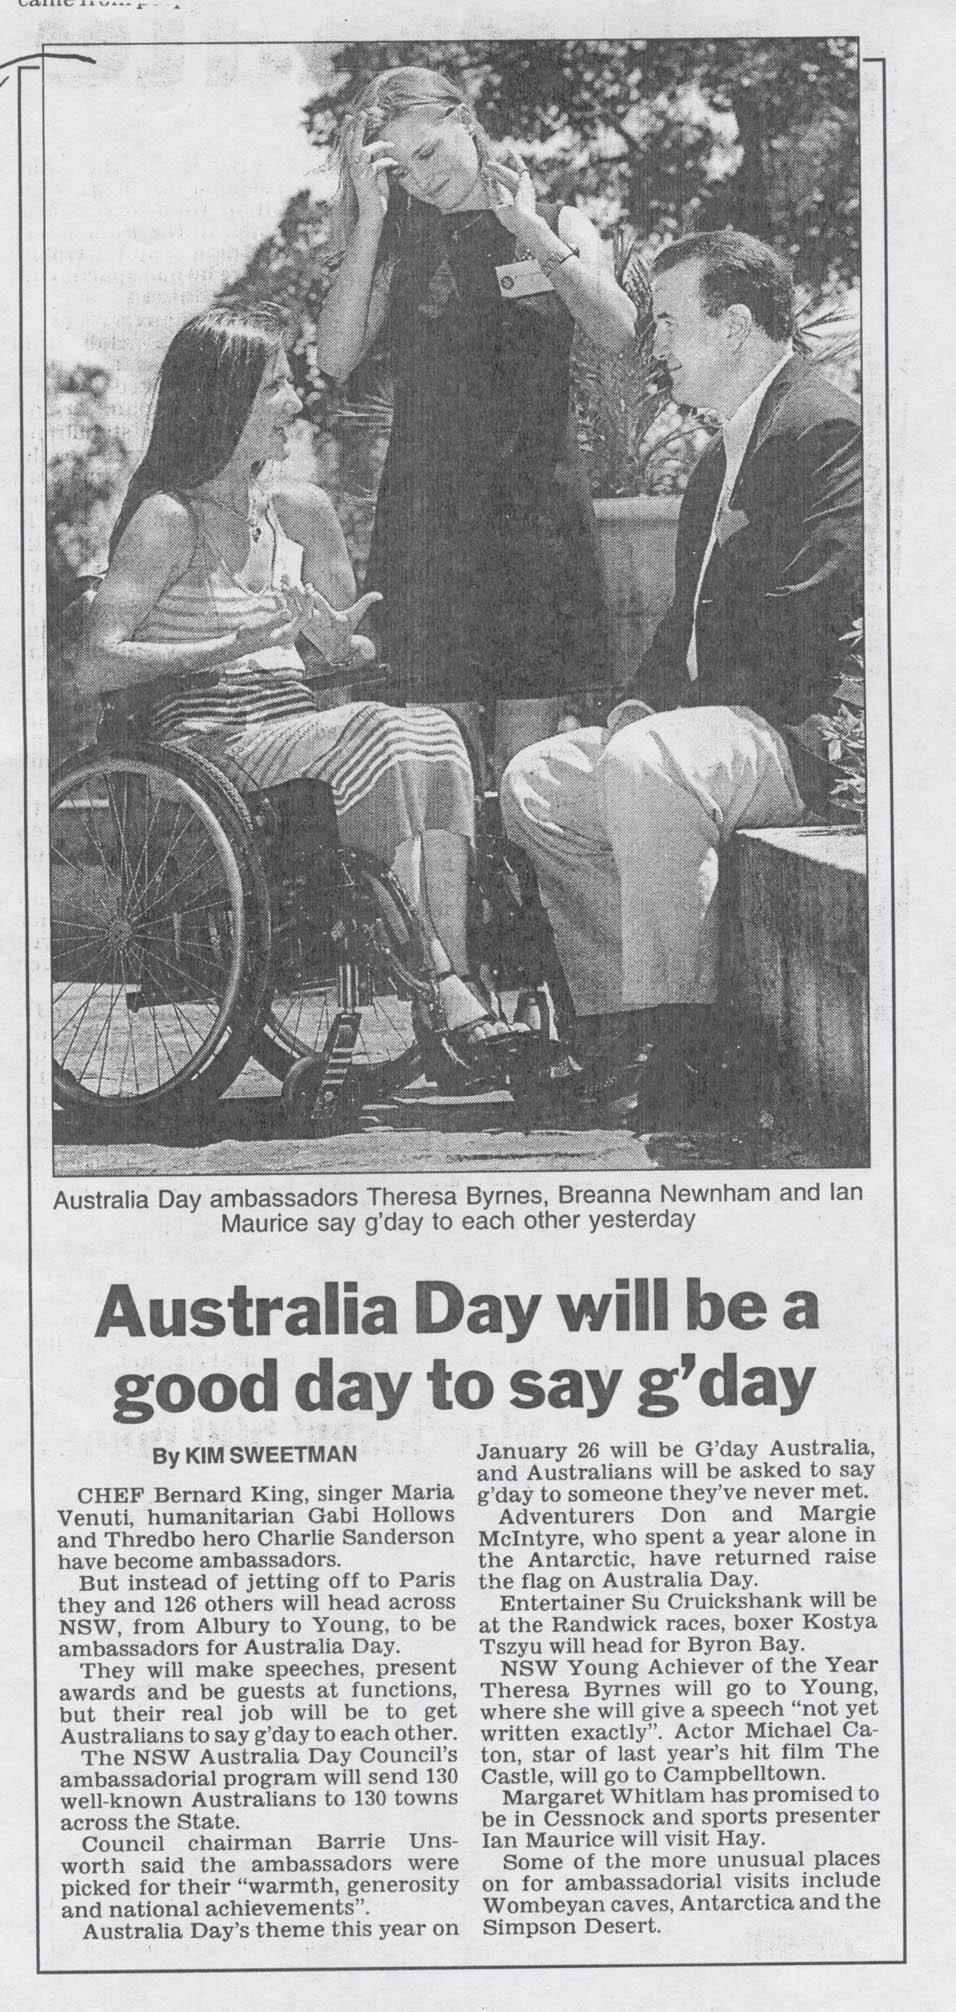 67telegraphAustraliaDay1998.jpg